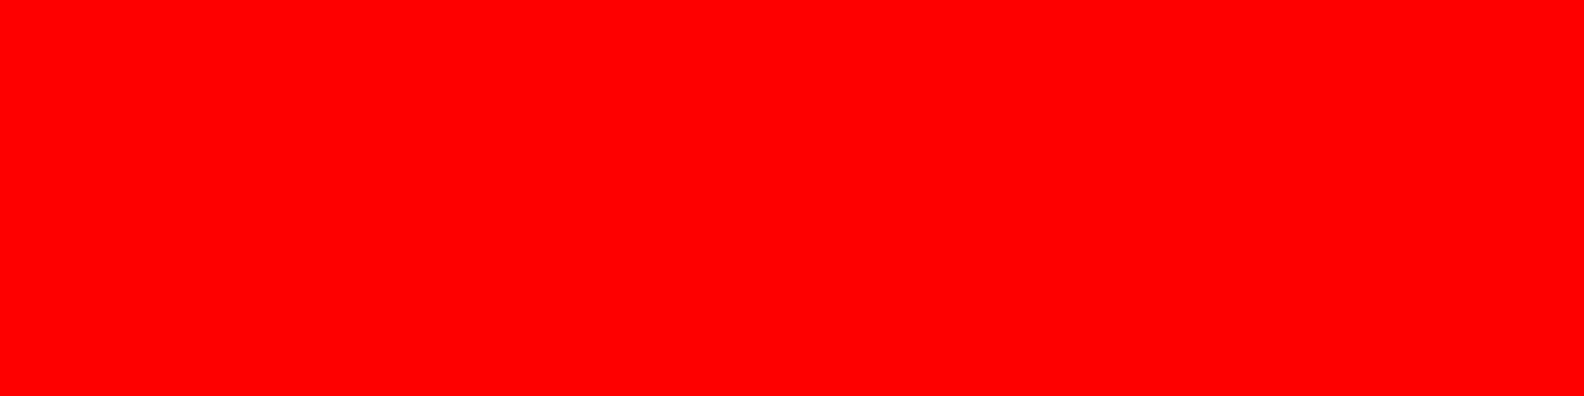 1584x396 Red Solid Color Background